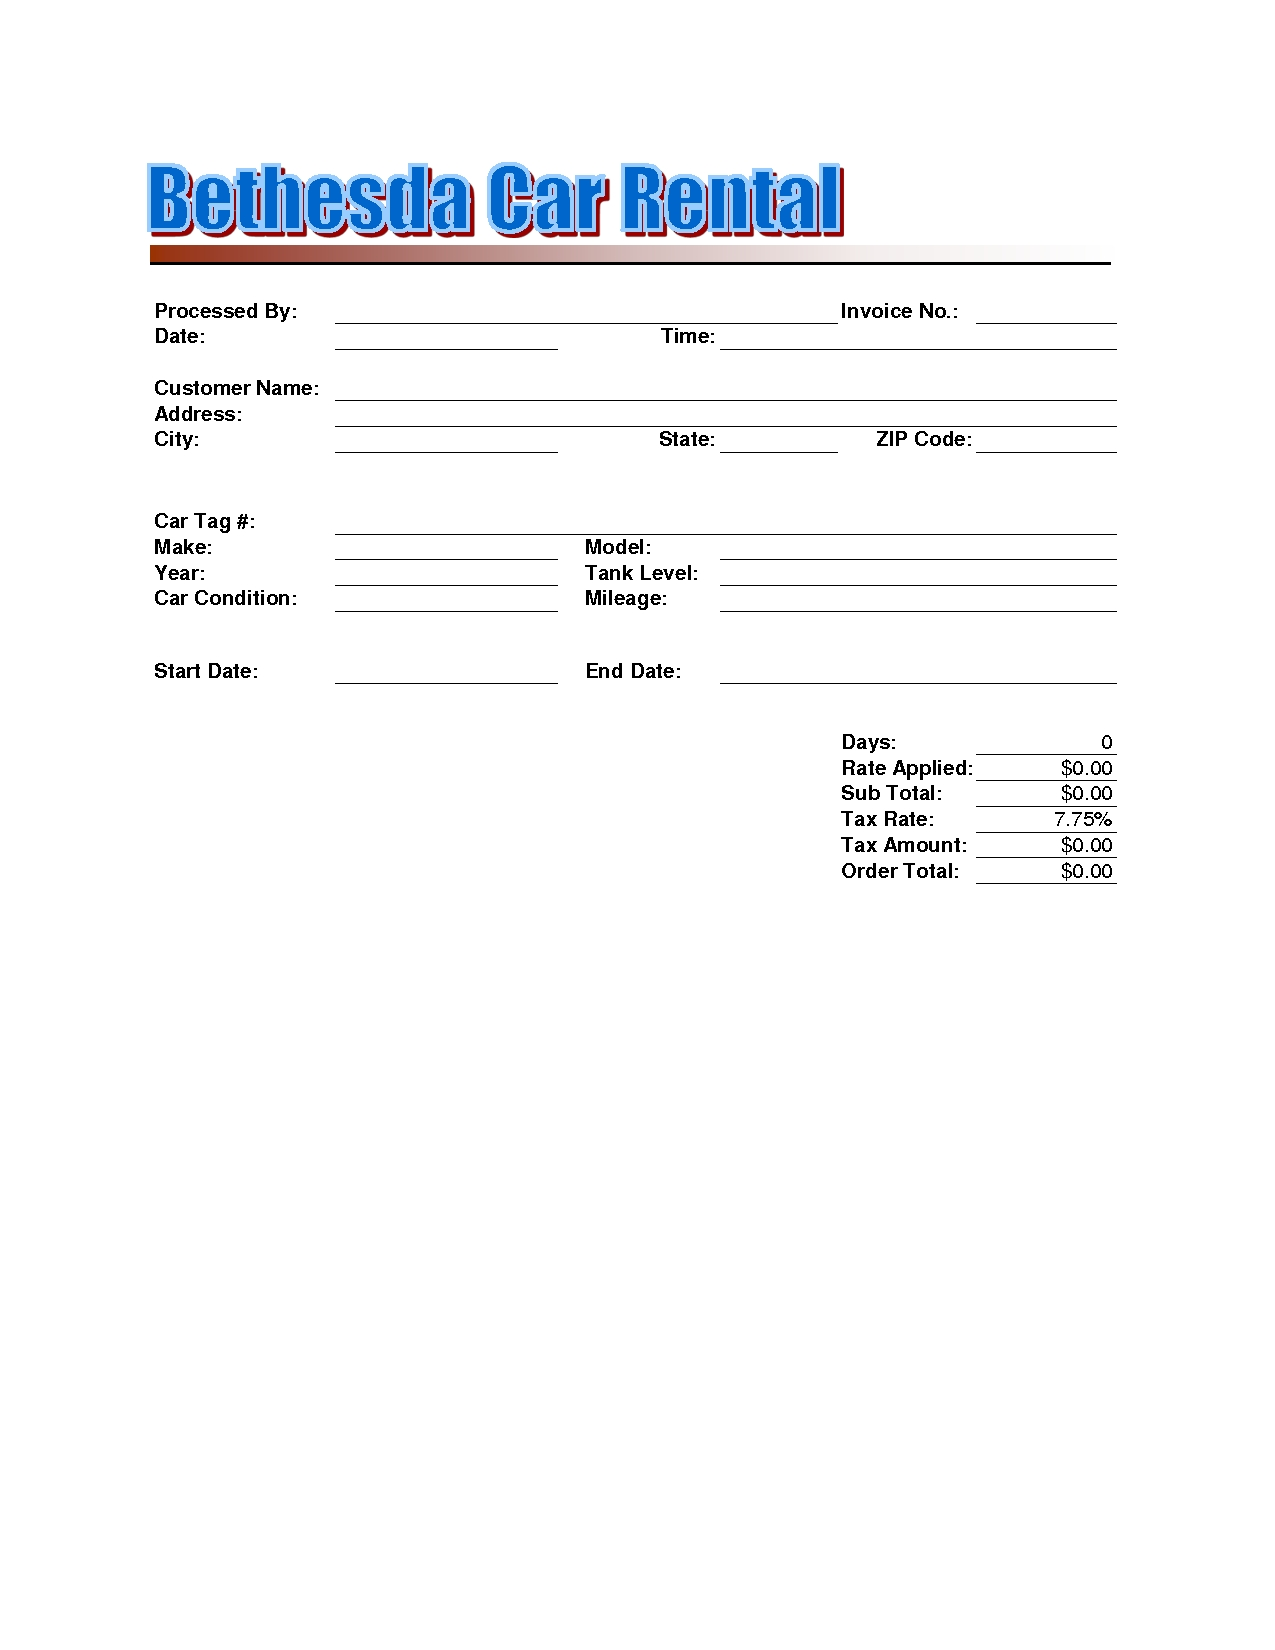 Car Rental Receipt Template. Car Rental Invoice Template * Invoice ...